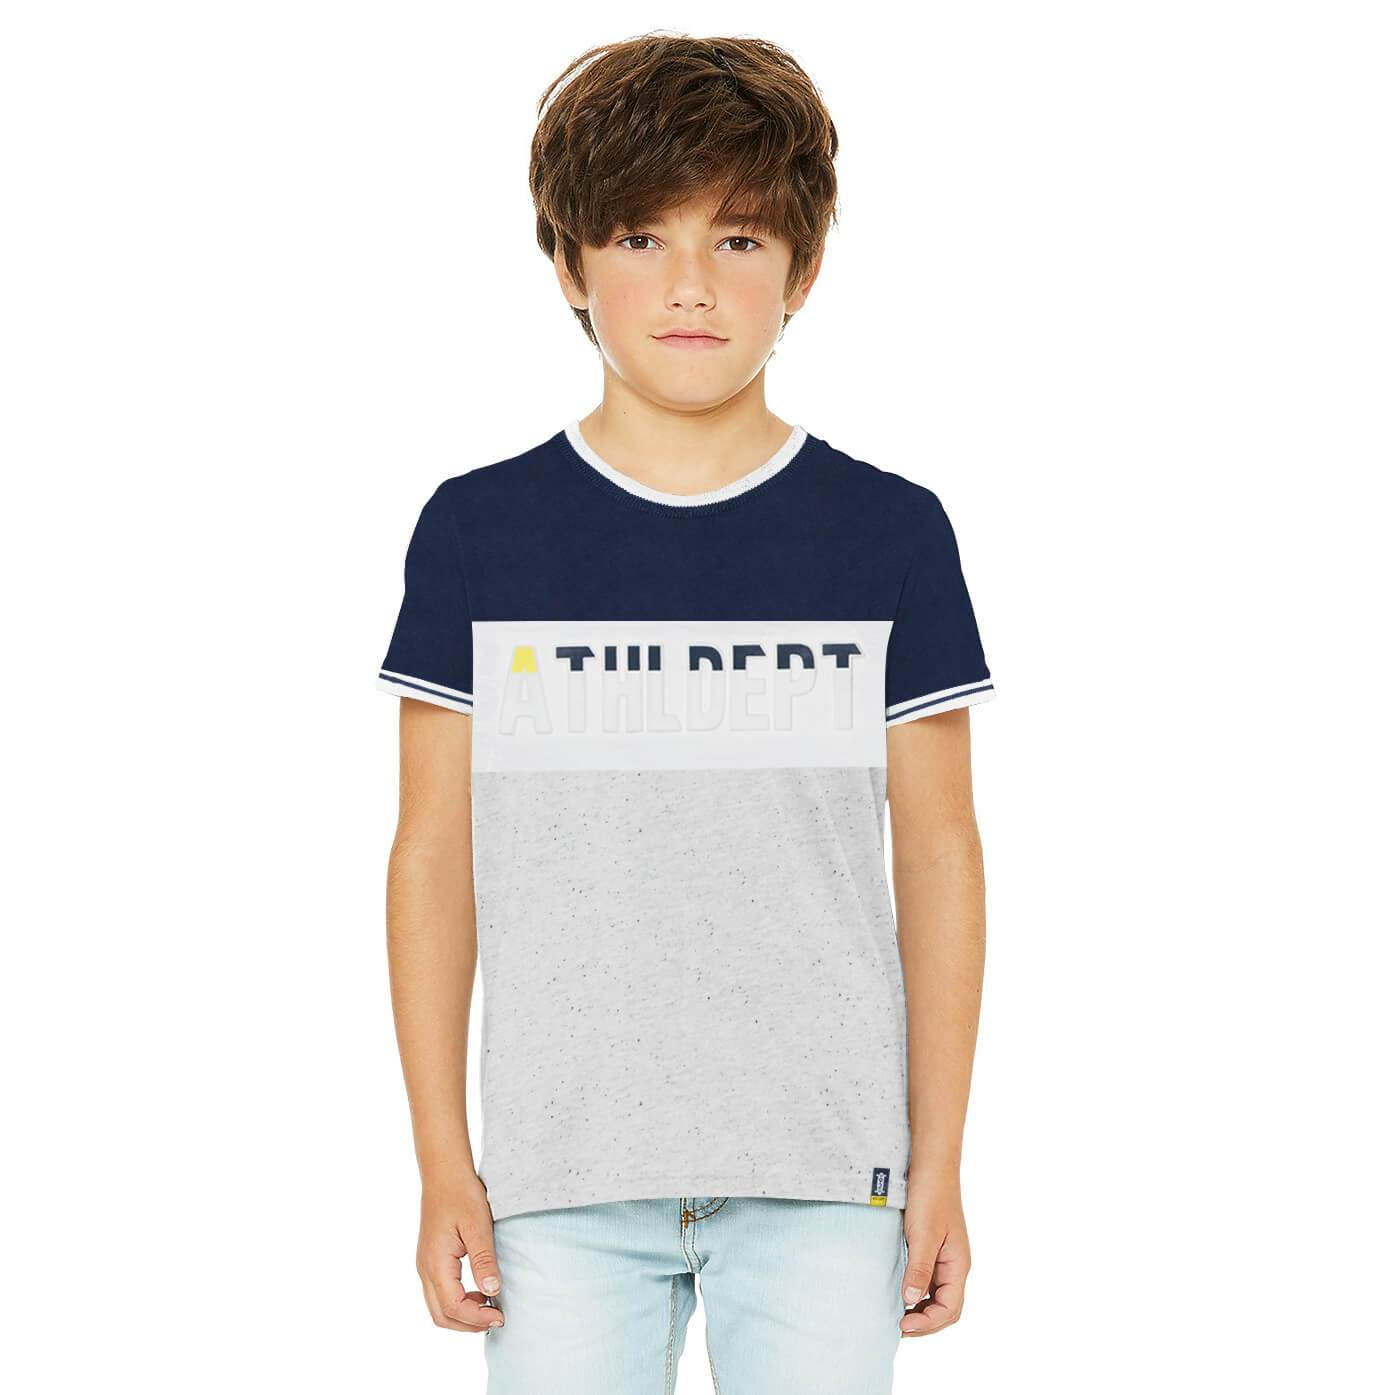 Henry James Kid's T-Shirt Grey / 11-12 Years Boy's Henry James ATHLDEPT Short Sleeve Tee Shirt